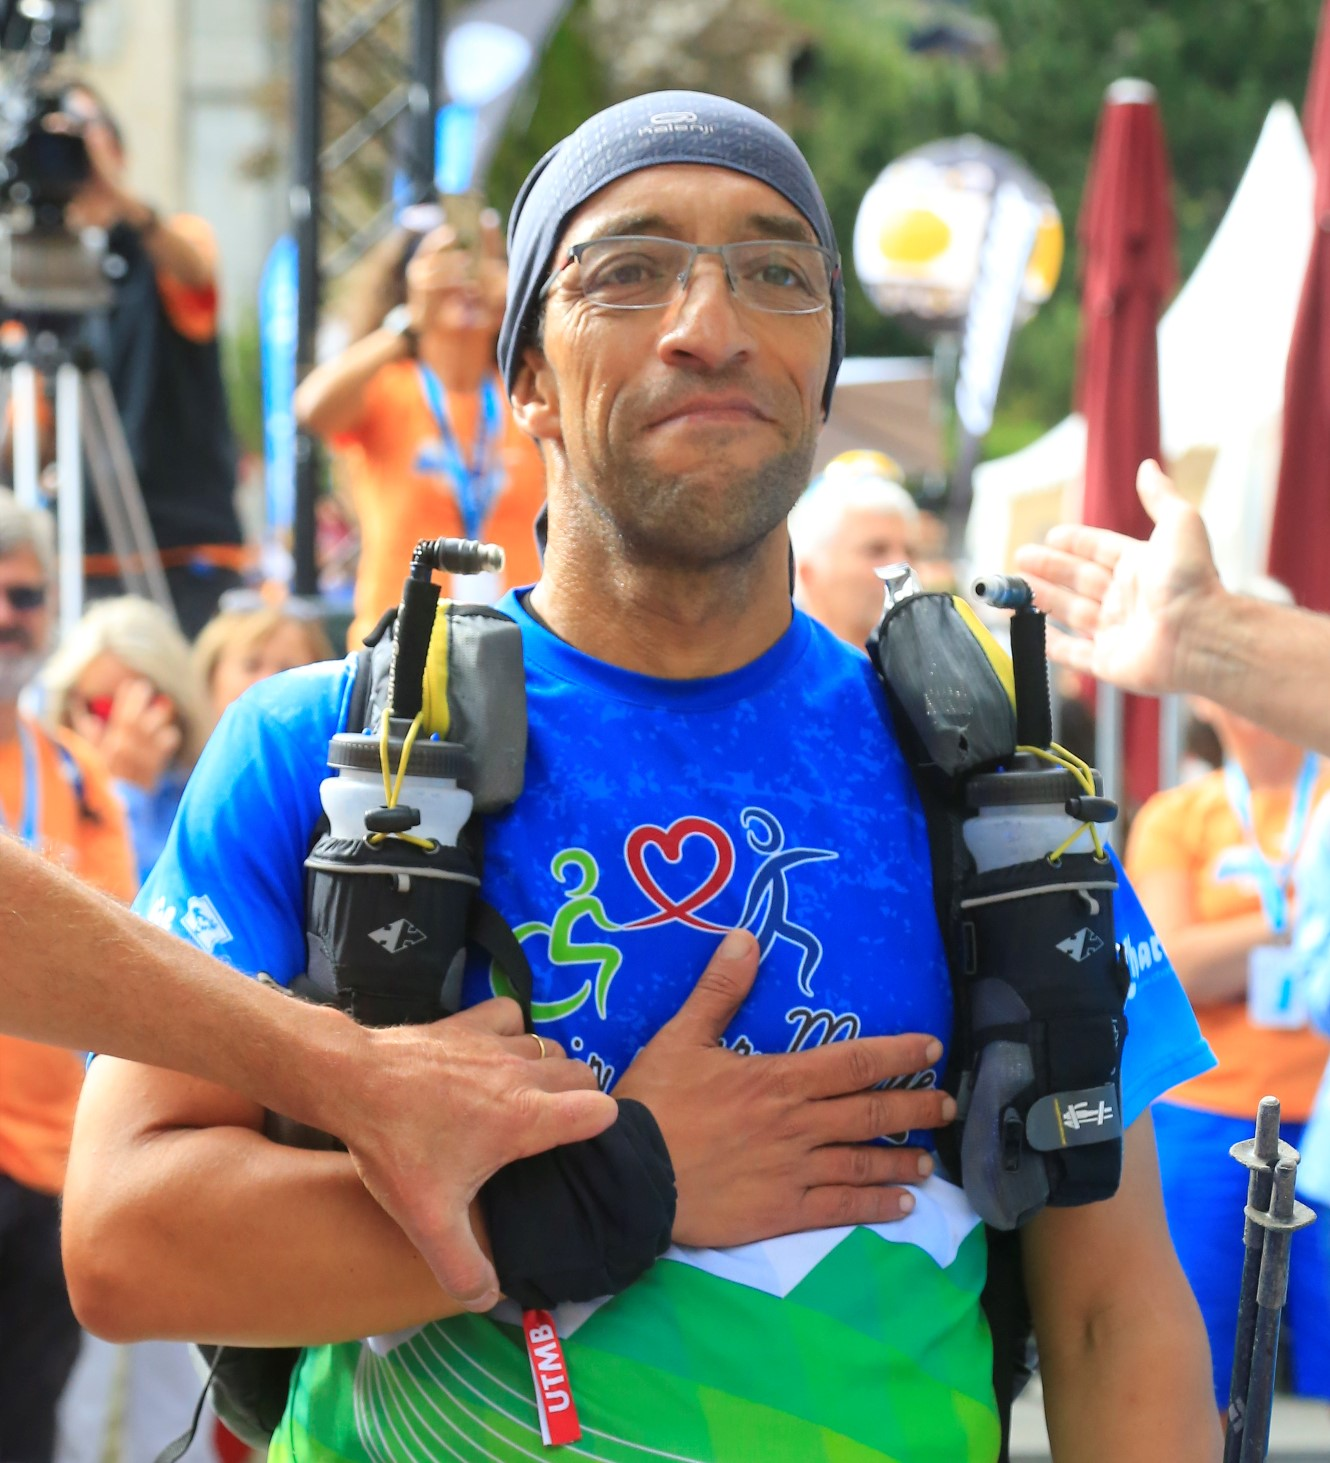 UTMB - Finisher